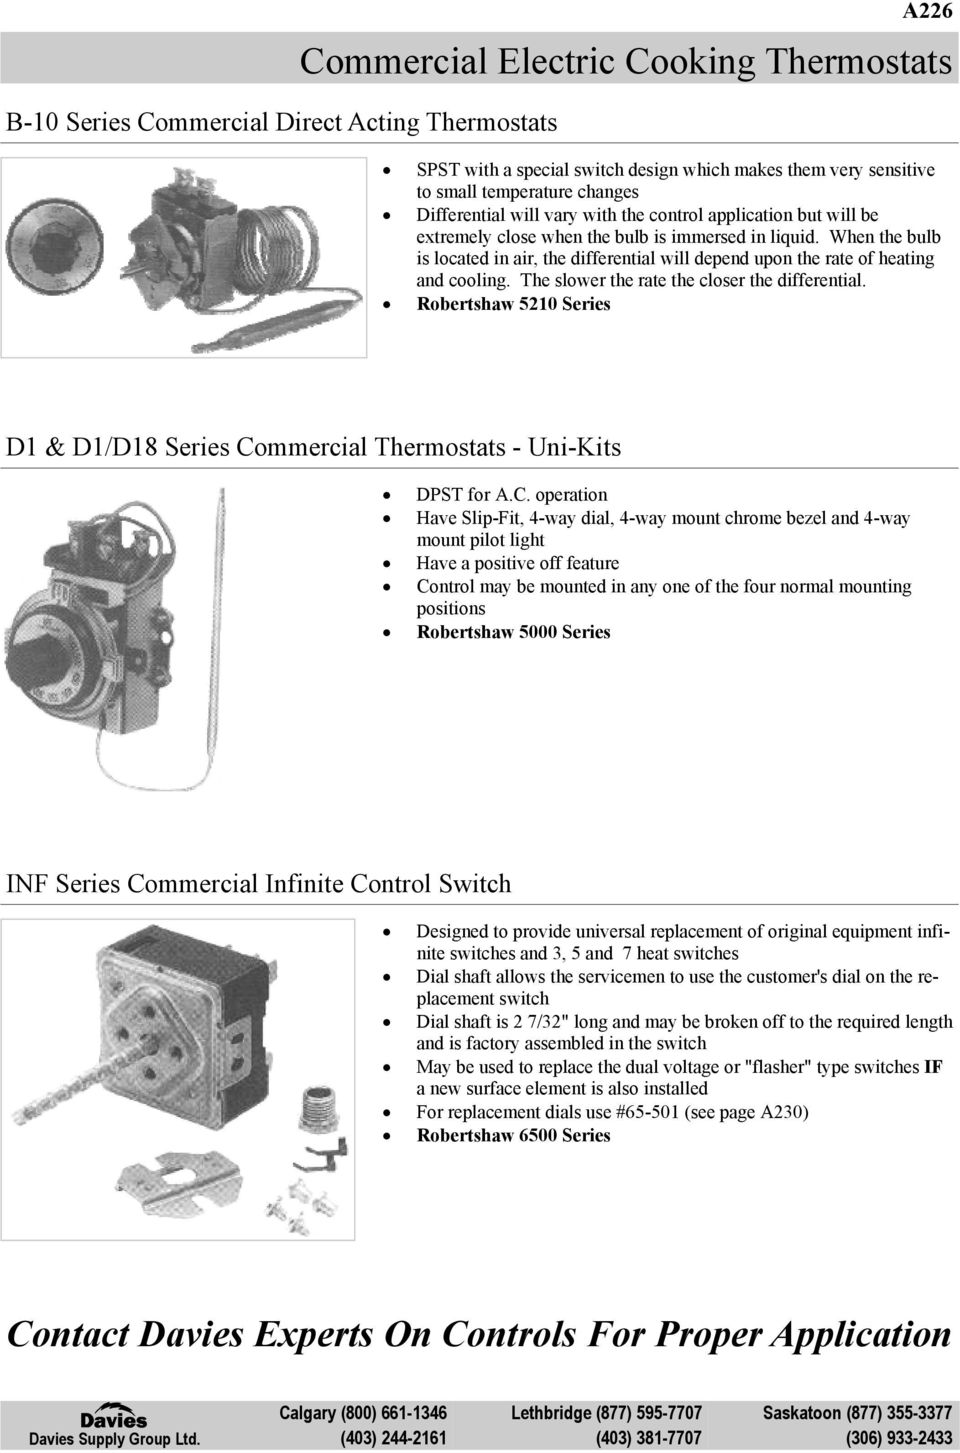 Commercial Gas Cooking Thermostats Pdf Is A 4 Way Switch Dpdt When The Bulb Located In Air Differential Will Depend Upon Rate Of